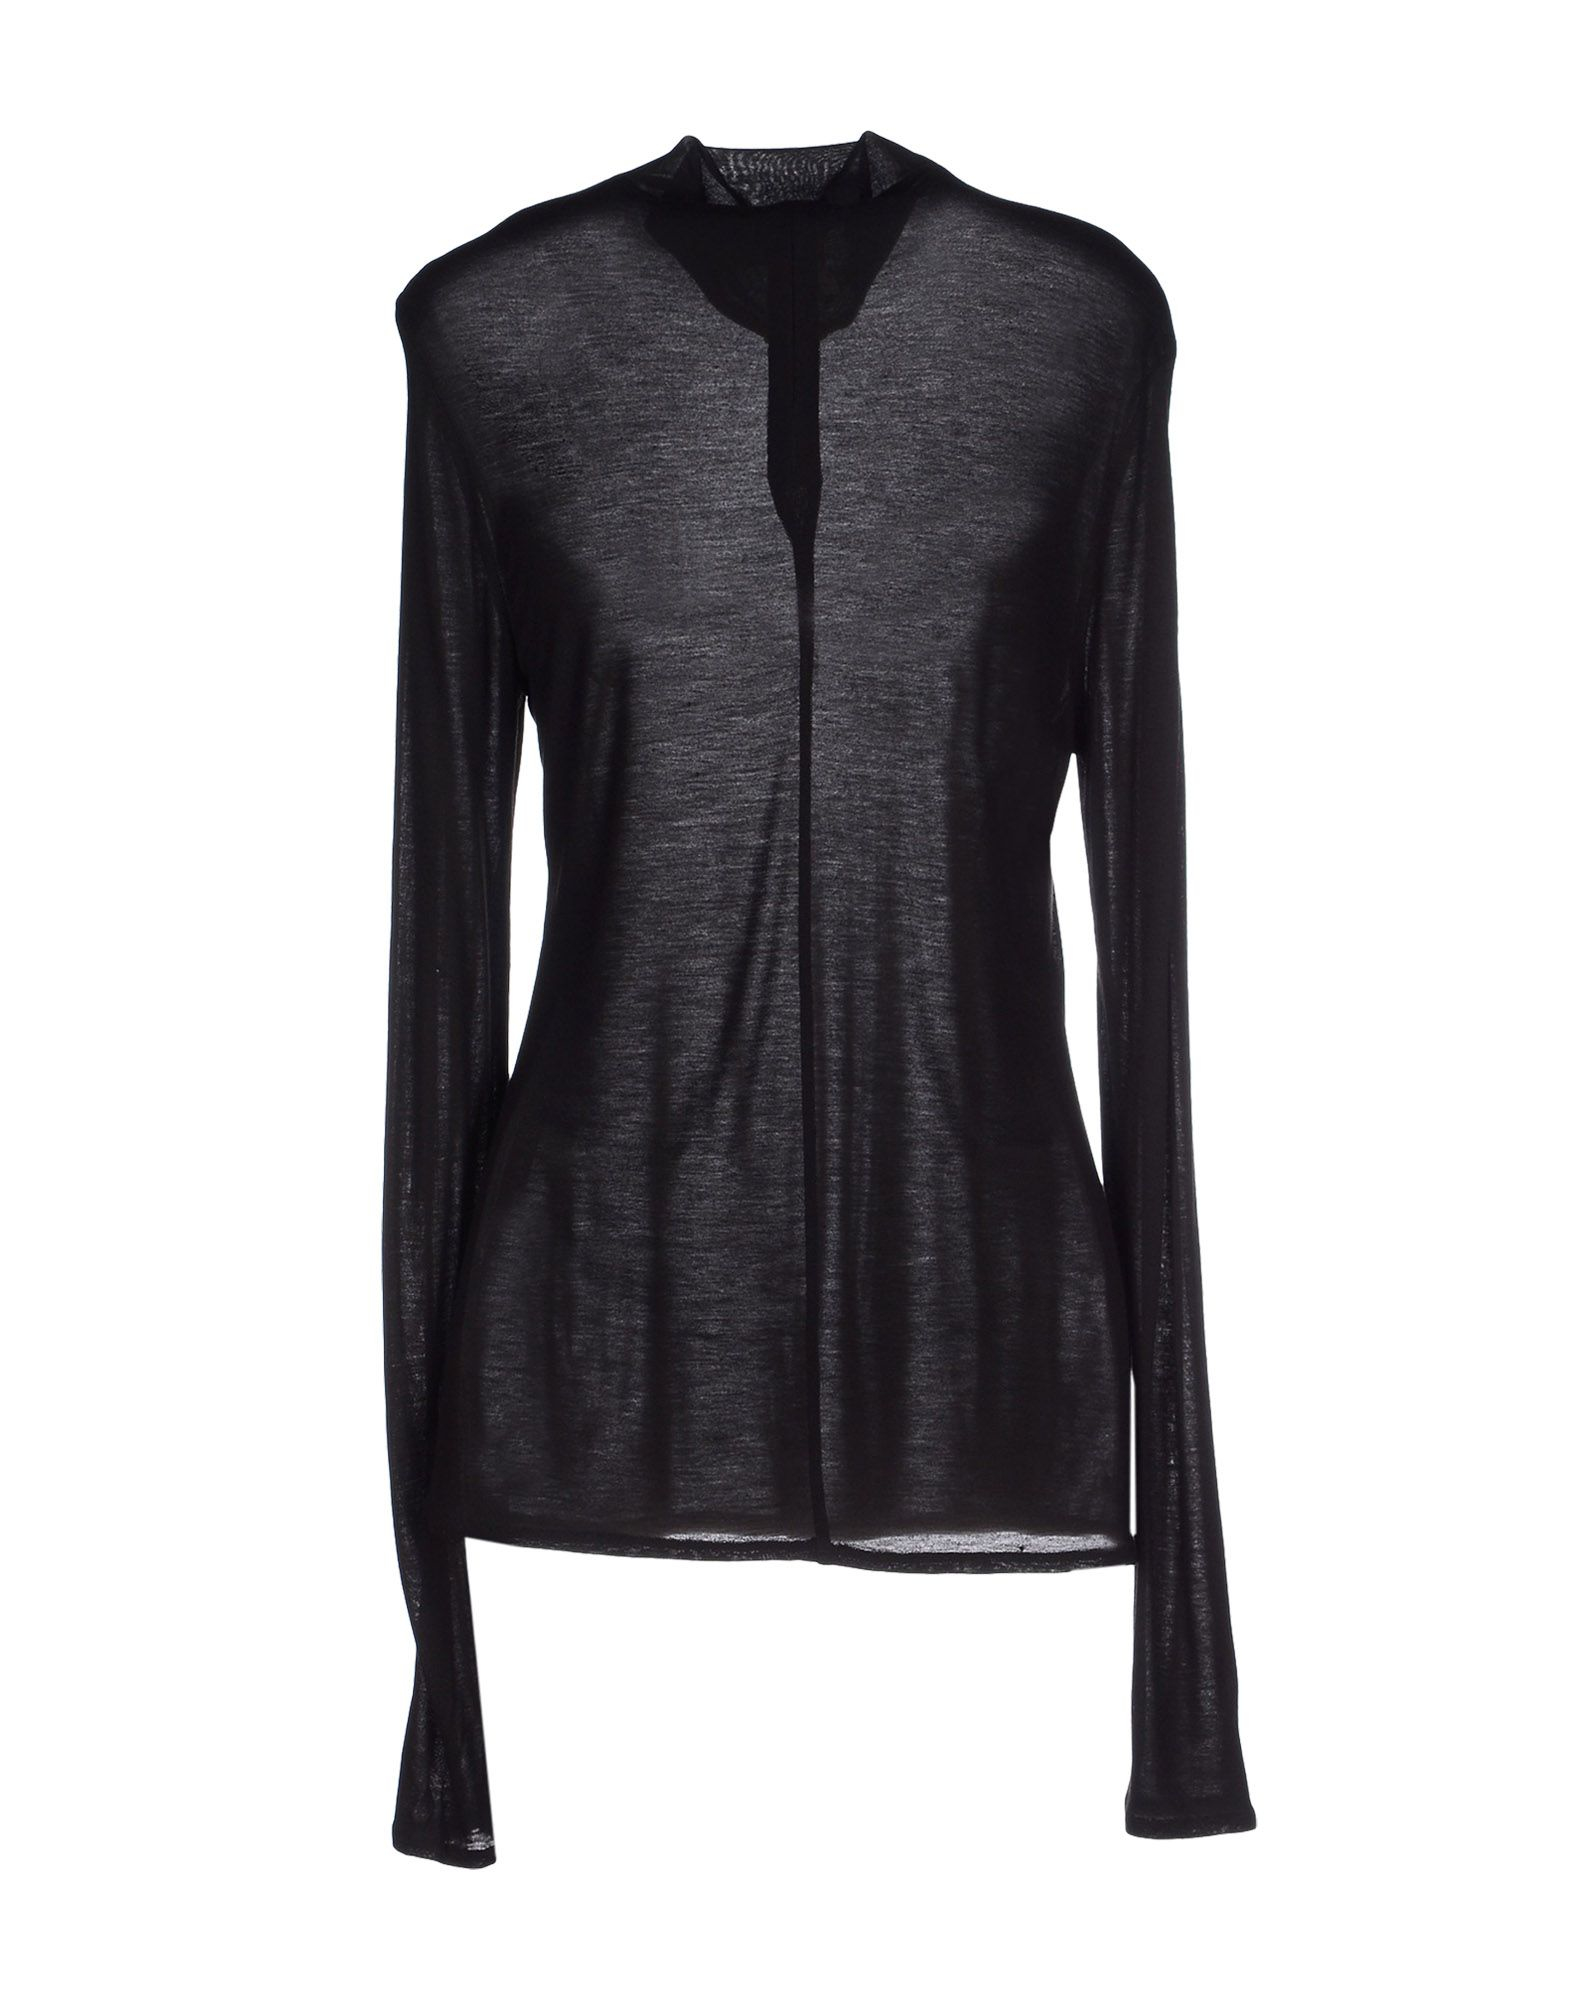 Lyst tory burch turtleneck in black for Tory burch fashion island